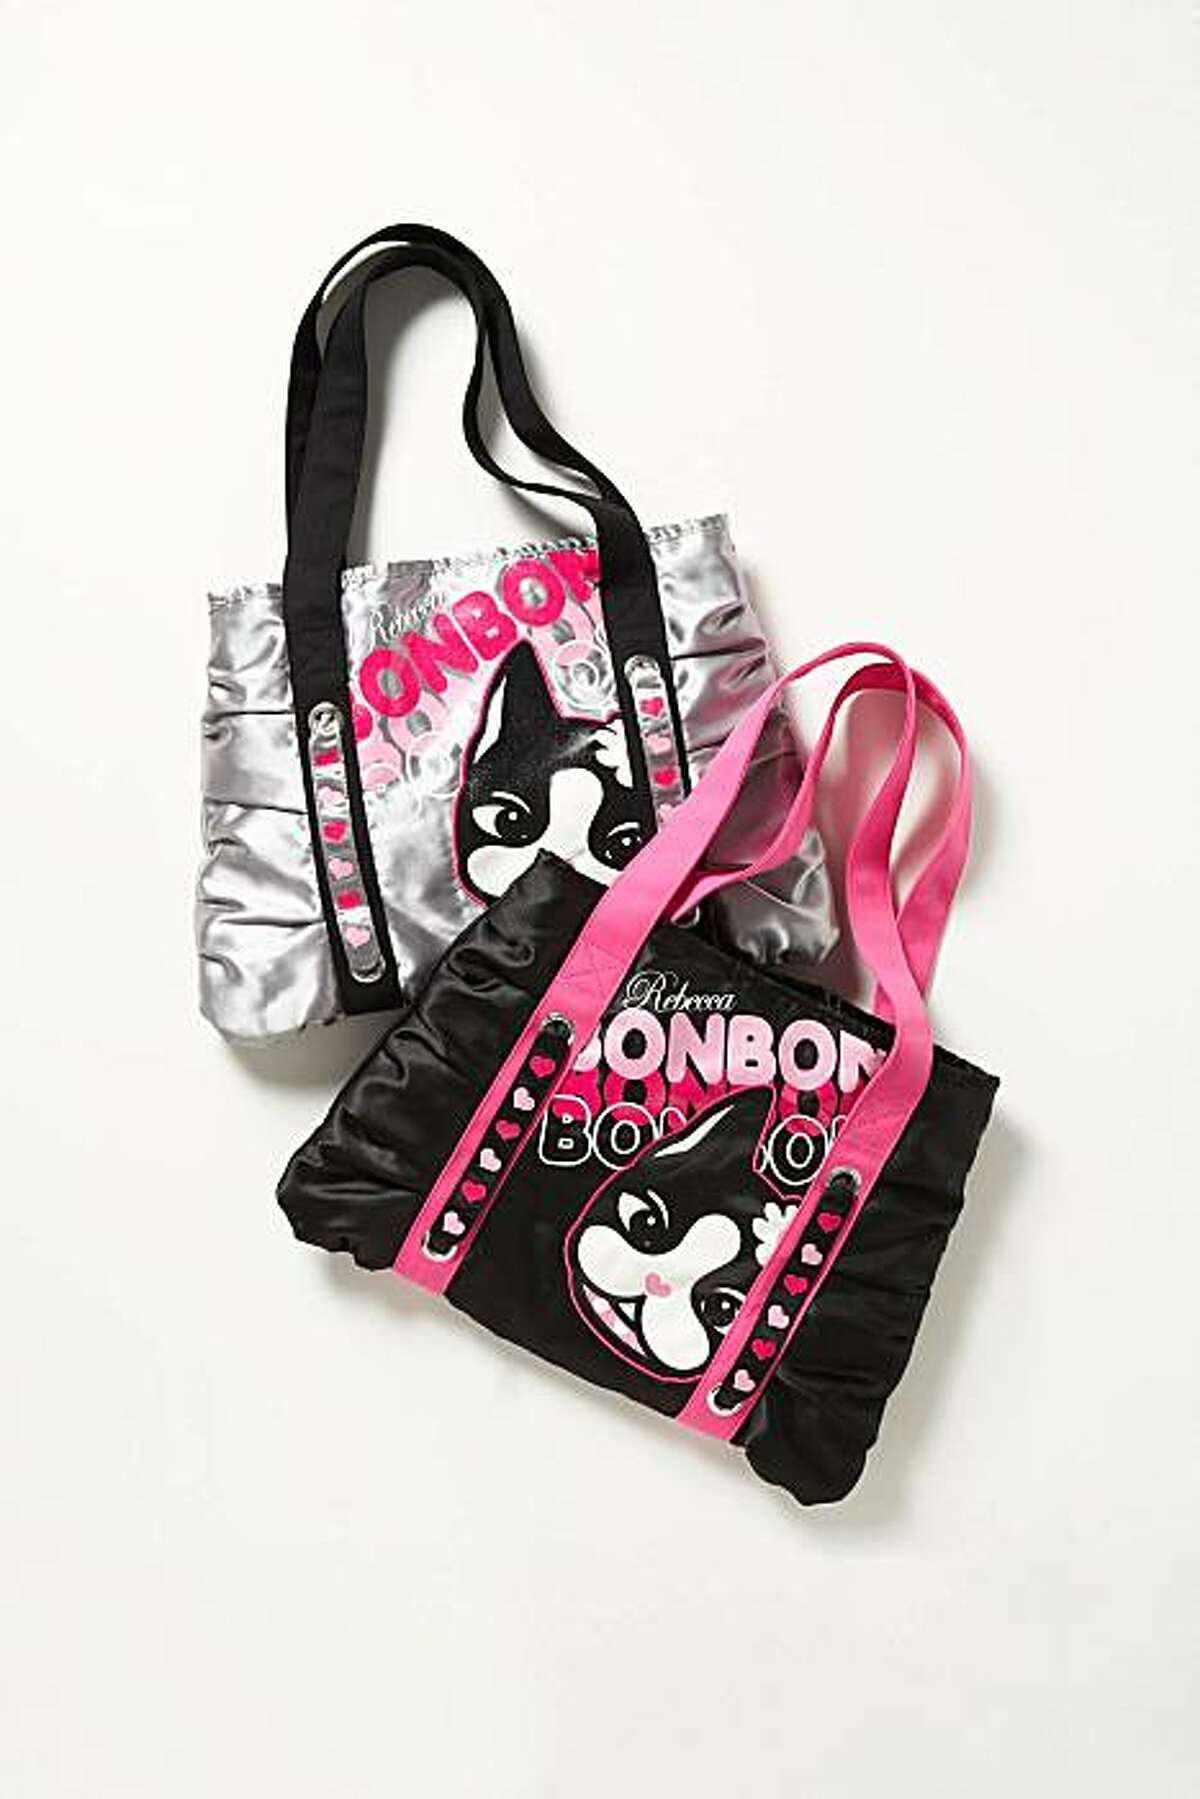 Canvas crossbody bags ($10) featuring Rebecca Bonbon, the icon for Sears Holding Corp.'s new tween and juniors line.